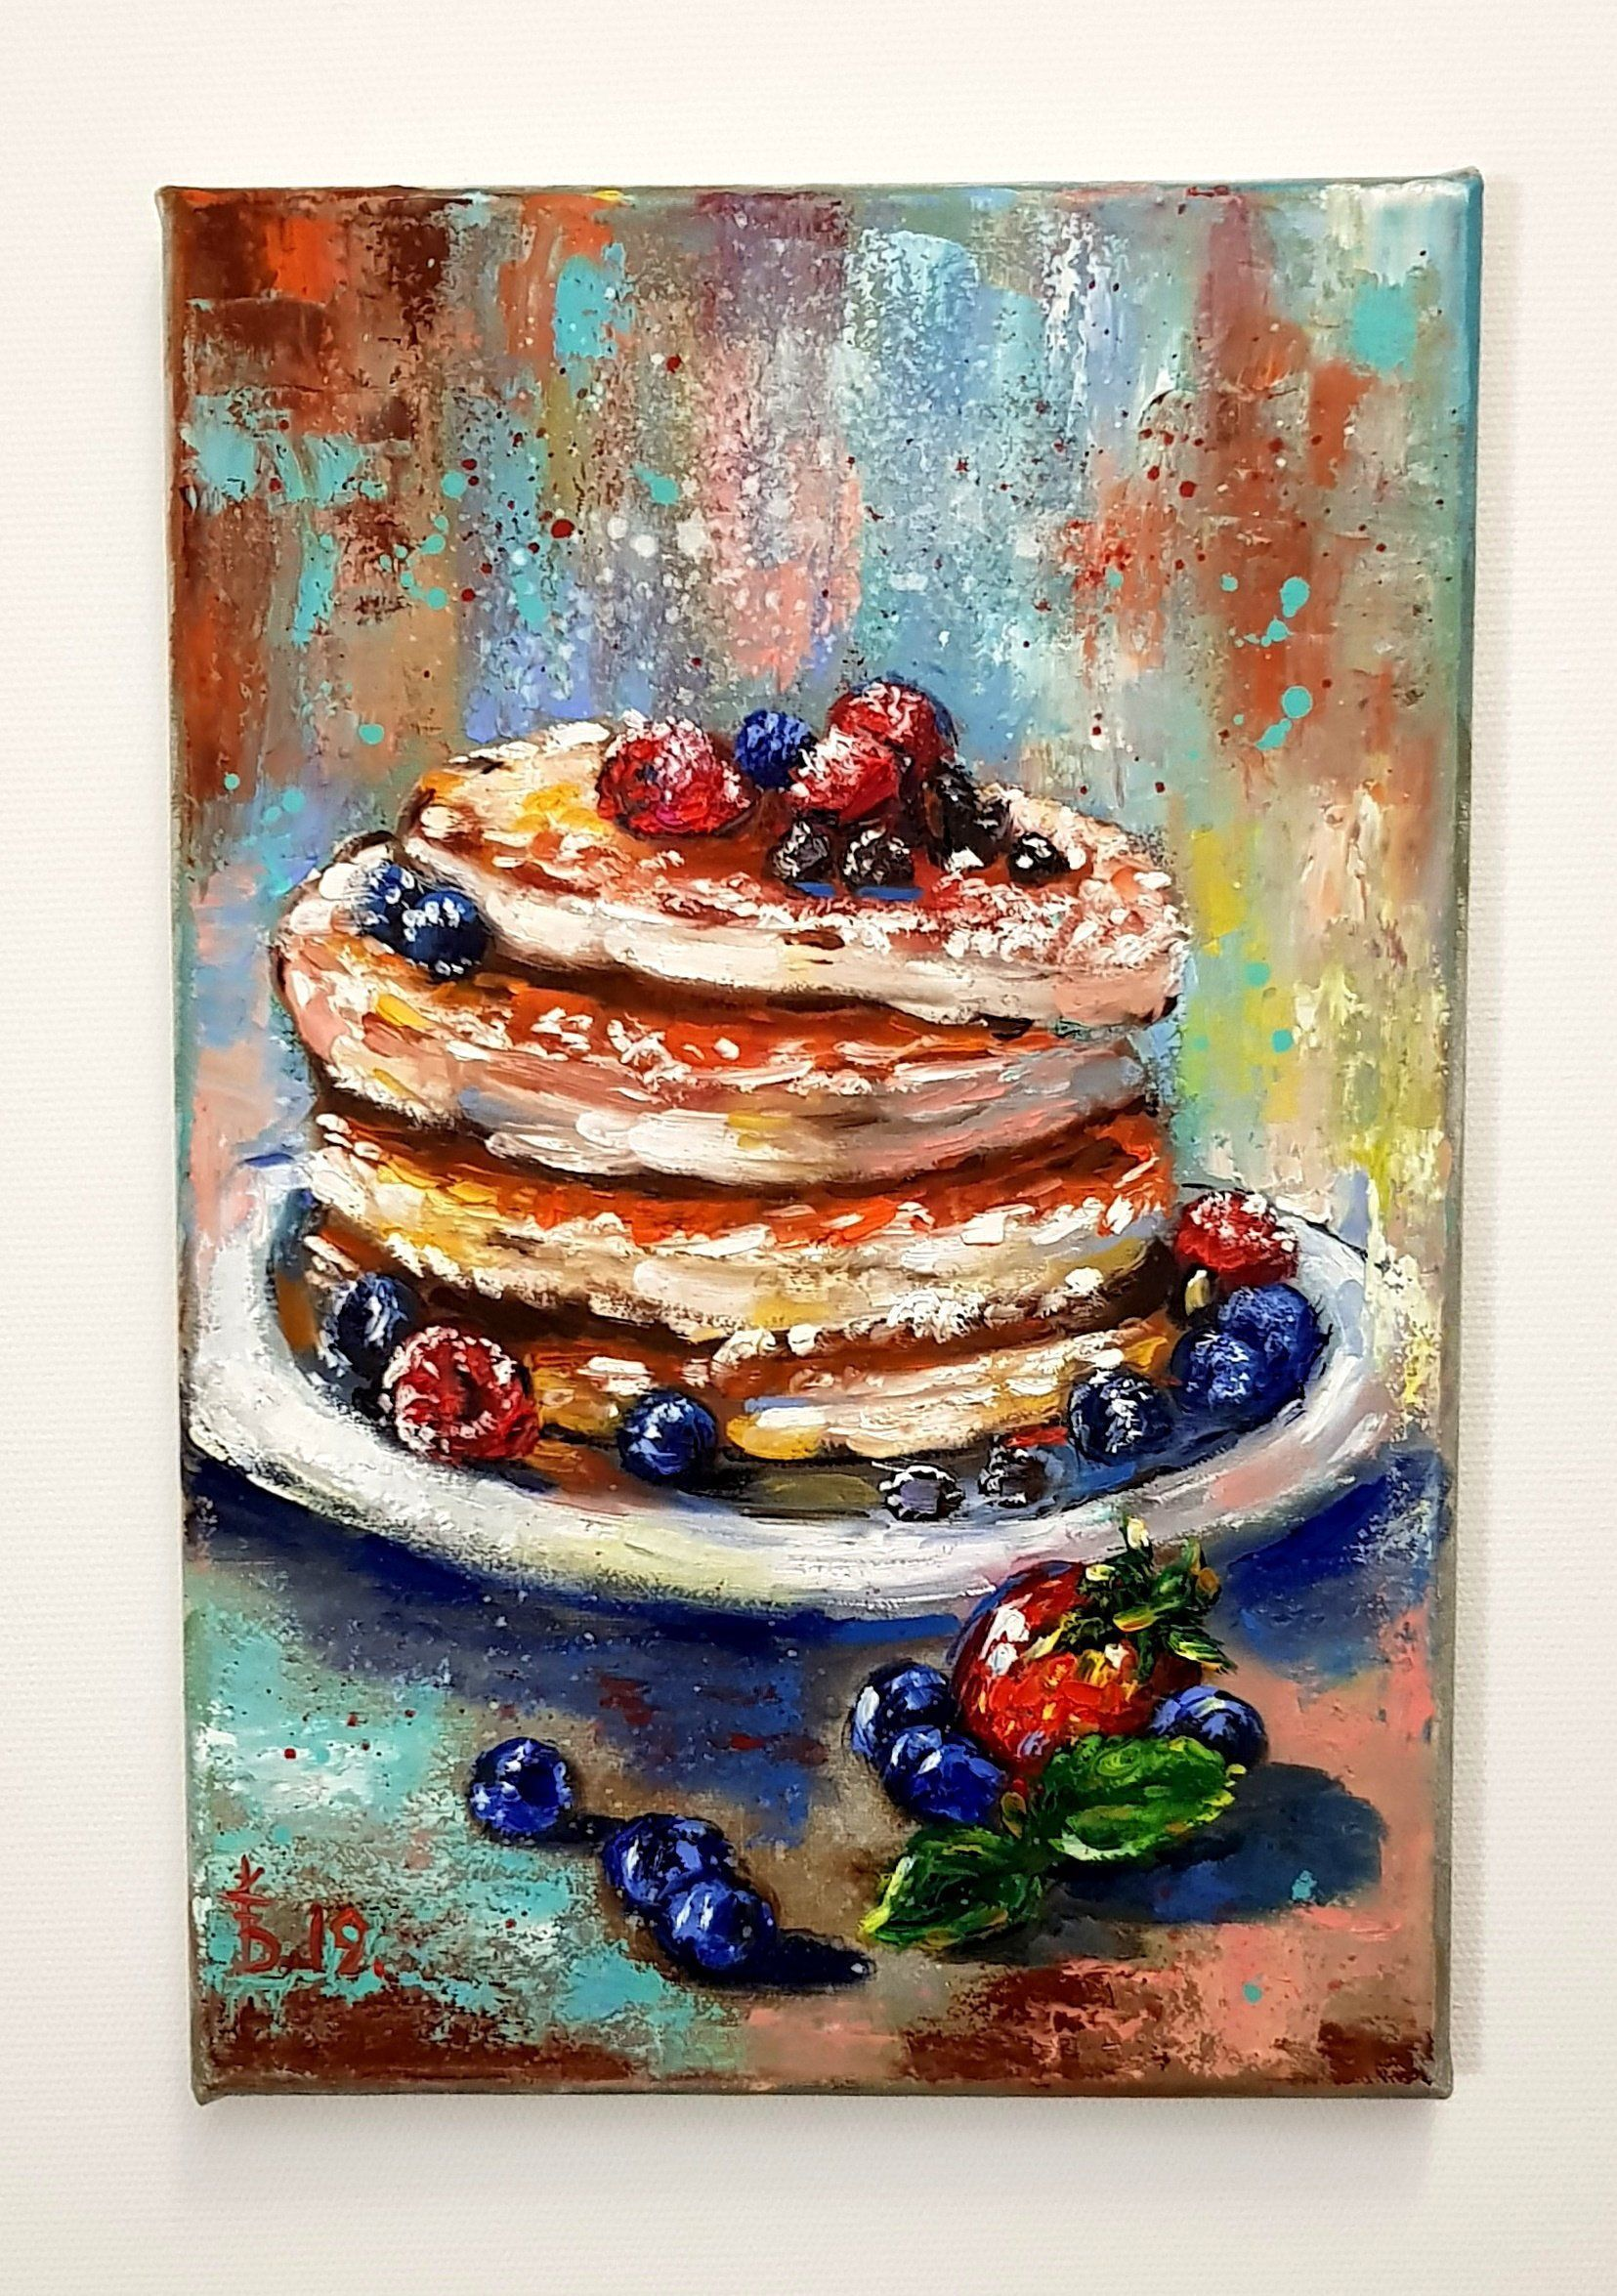 Best Place To Buy Wall Art.Pancakes Berries Original Painting Food Painting Delicious